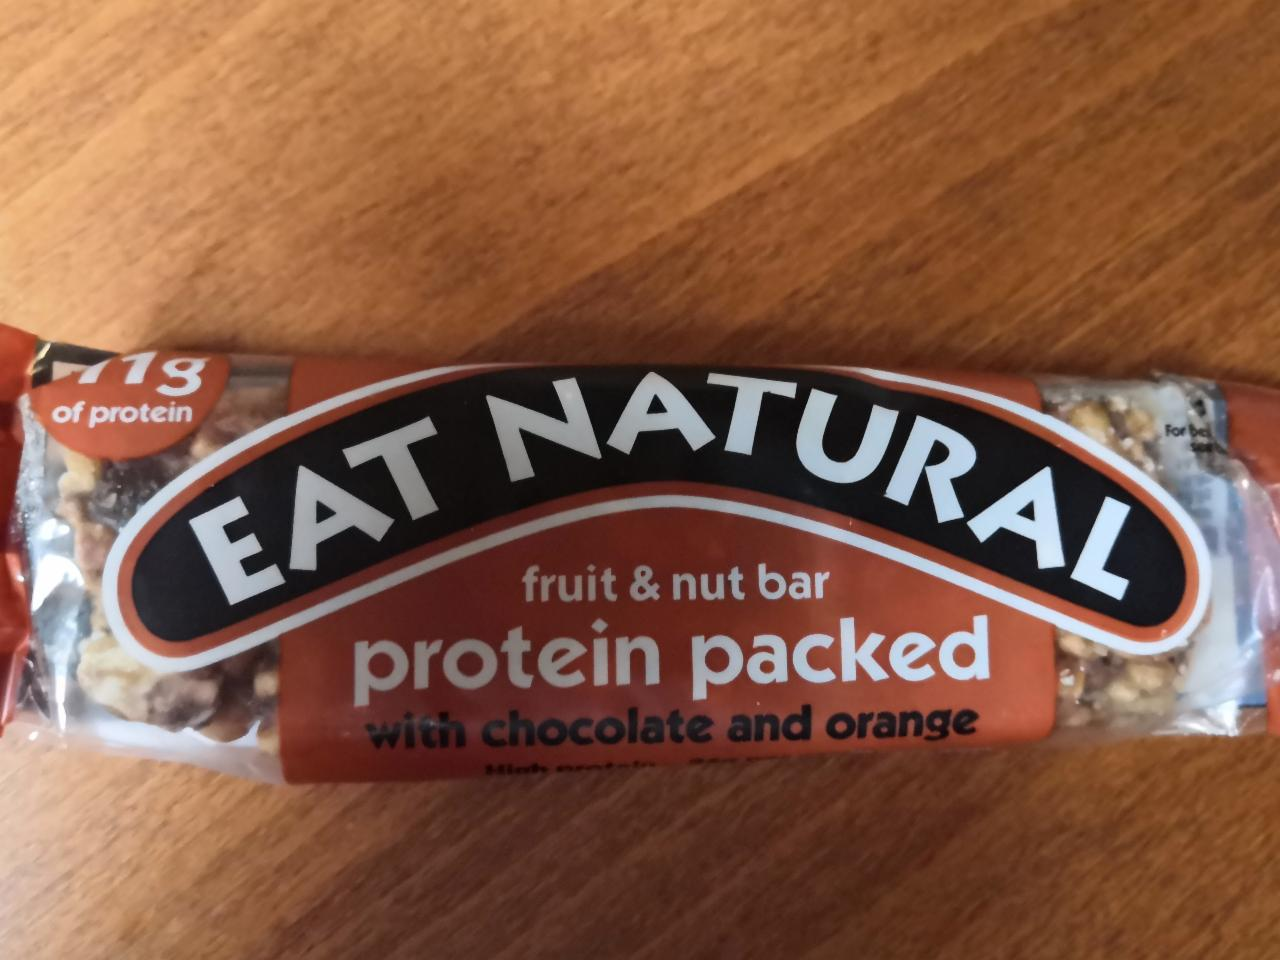 Fotografie - Eat natural fruit&nut bar protein packed with chocolate and orange